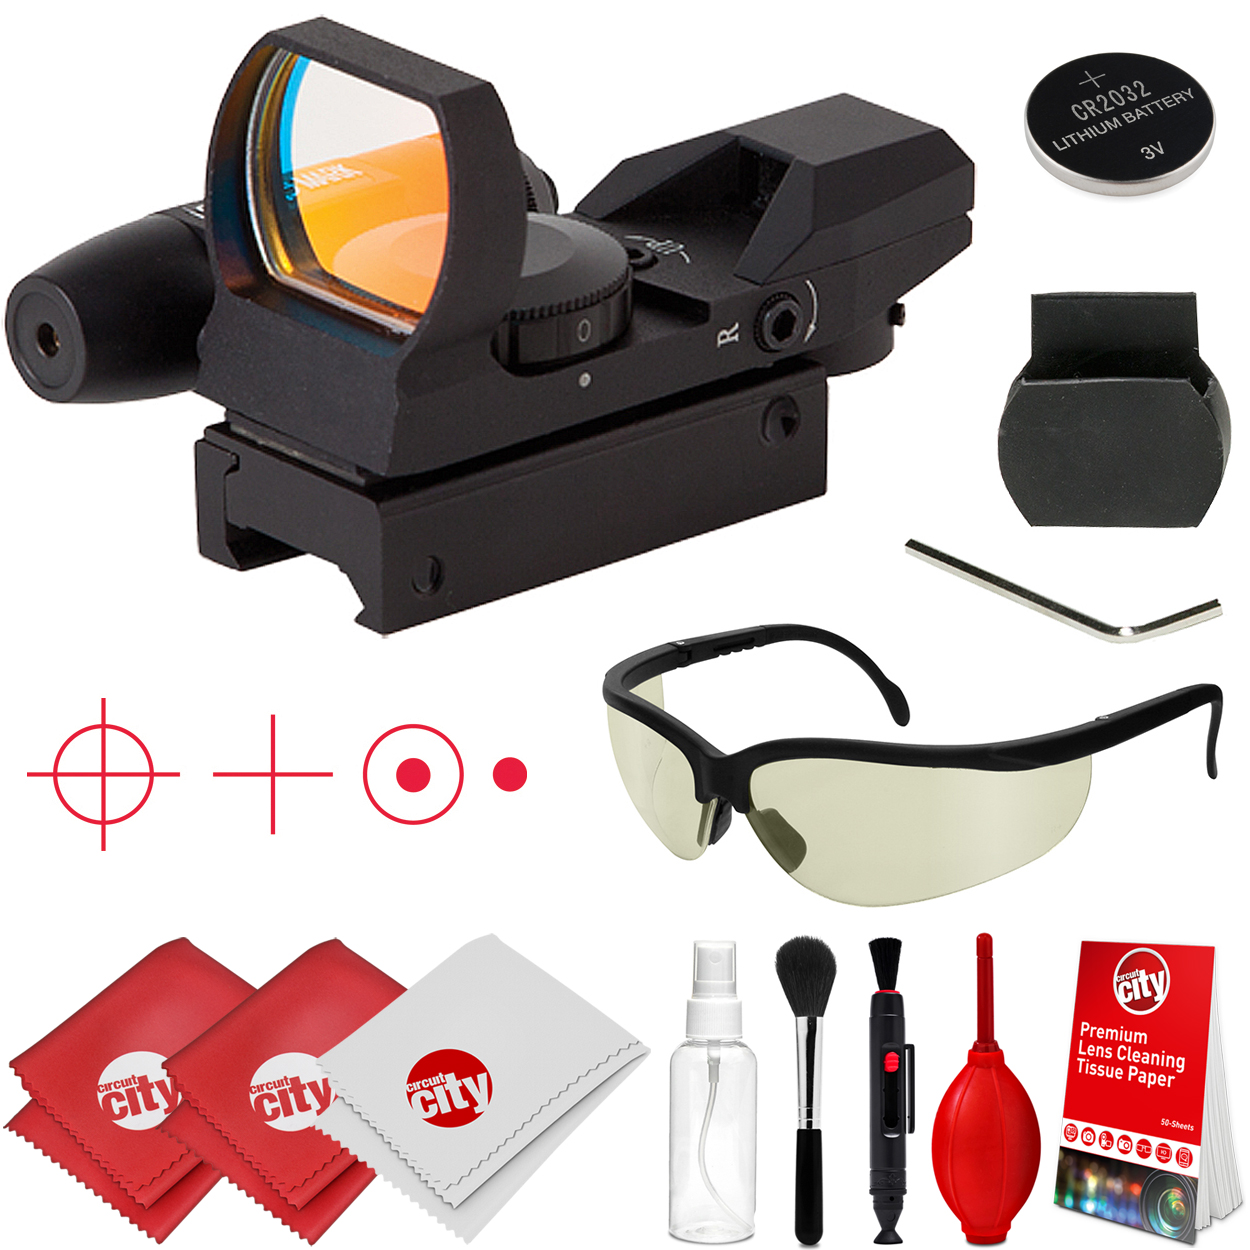 Sightmark Laser Dual Shot Reflex Rifle Sight with Tinted Ballistic Glasses and Optical Cleaning Kit (SM13002)